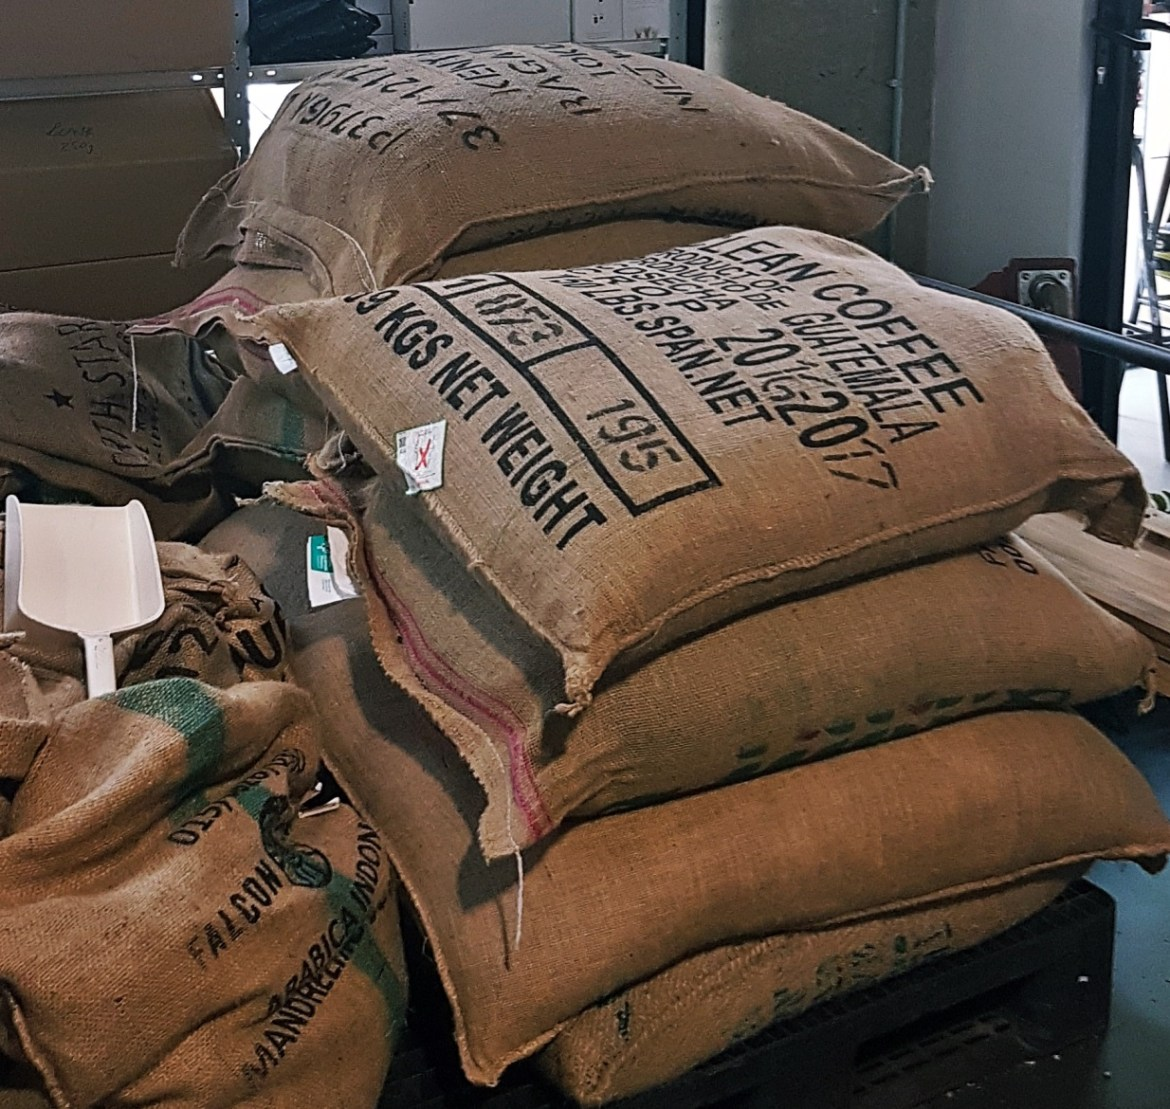 Bags of coffee beans - Review of North Star Coffee Shop by BeckyBecky Blogs